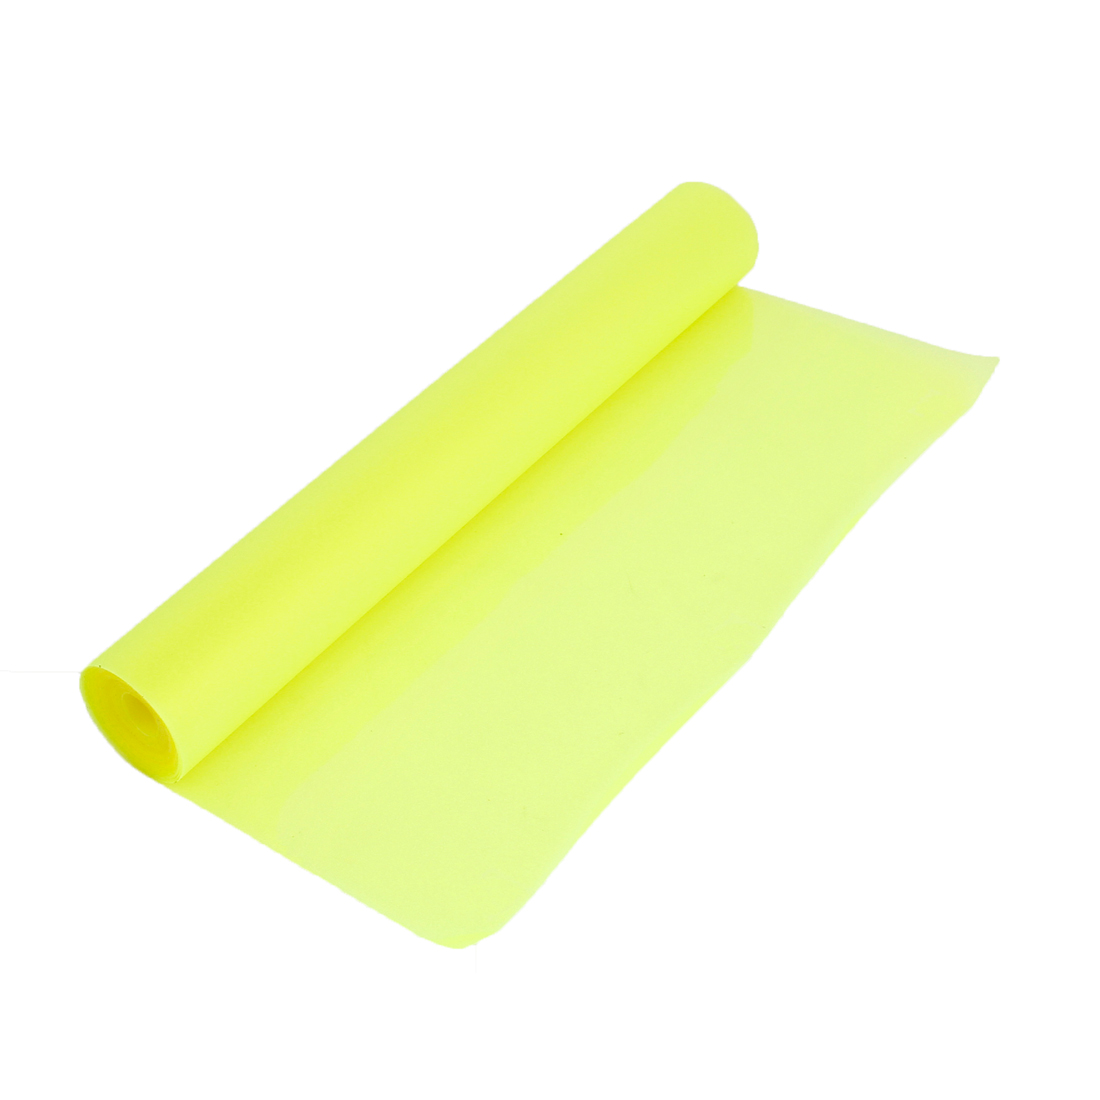 450cm x 30cm Glittery Yellow Film Sticker Cover for Car Truck Headlamp